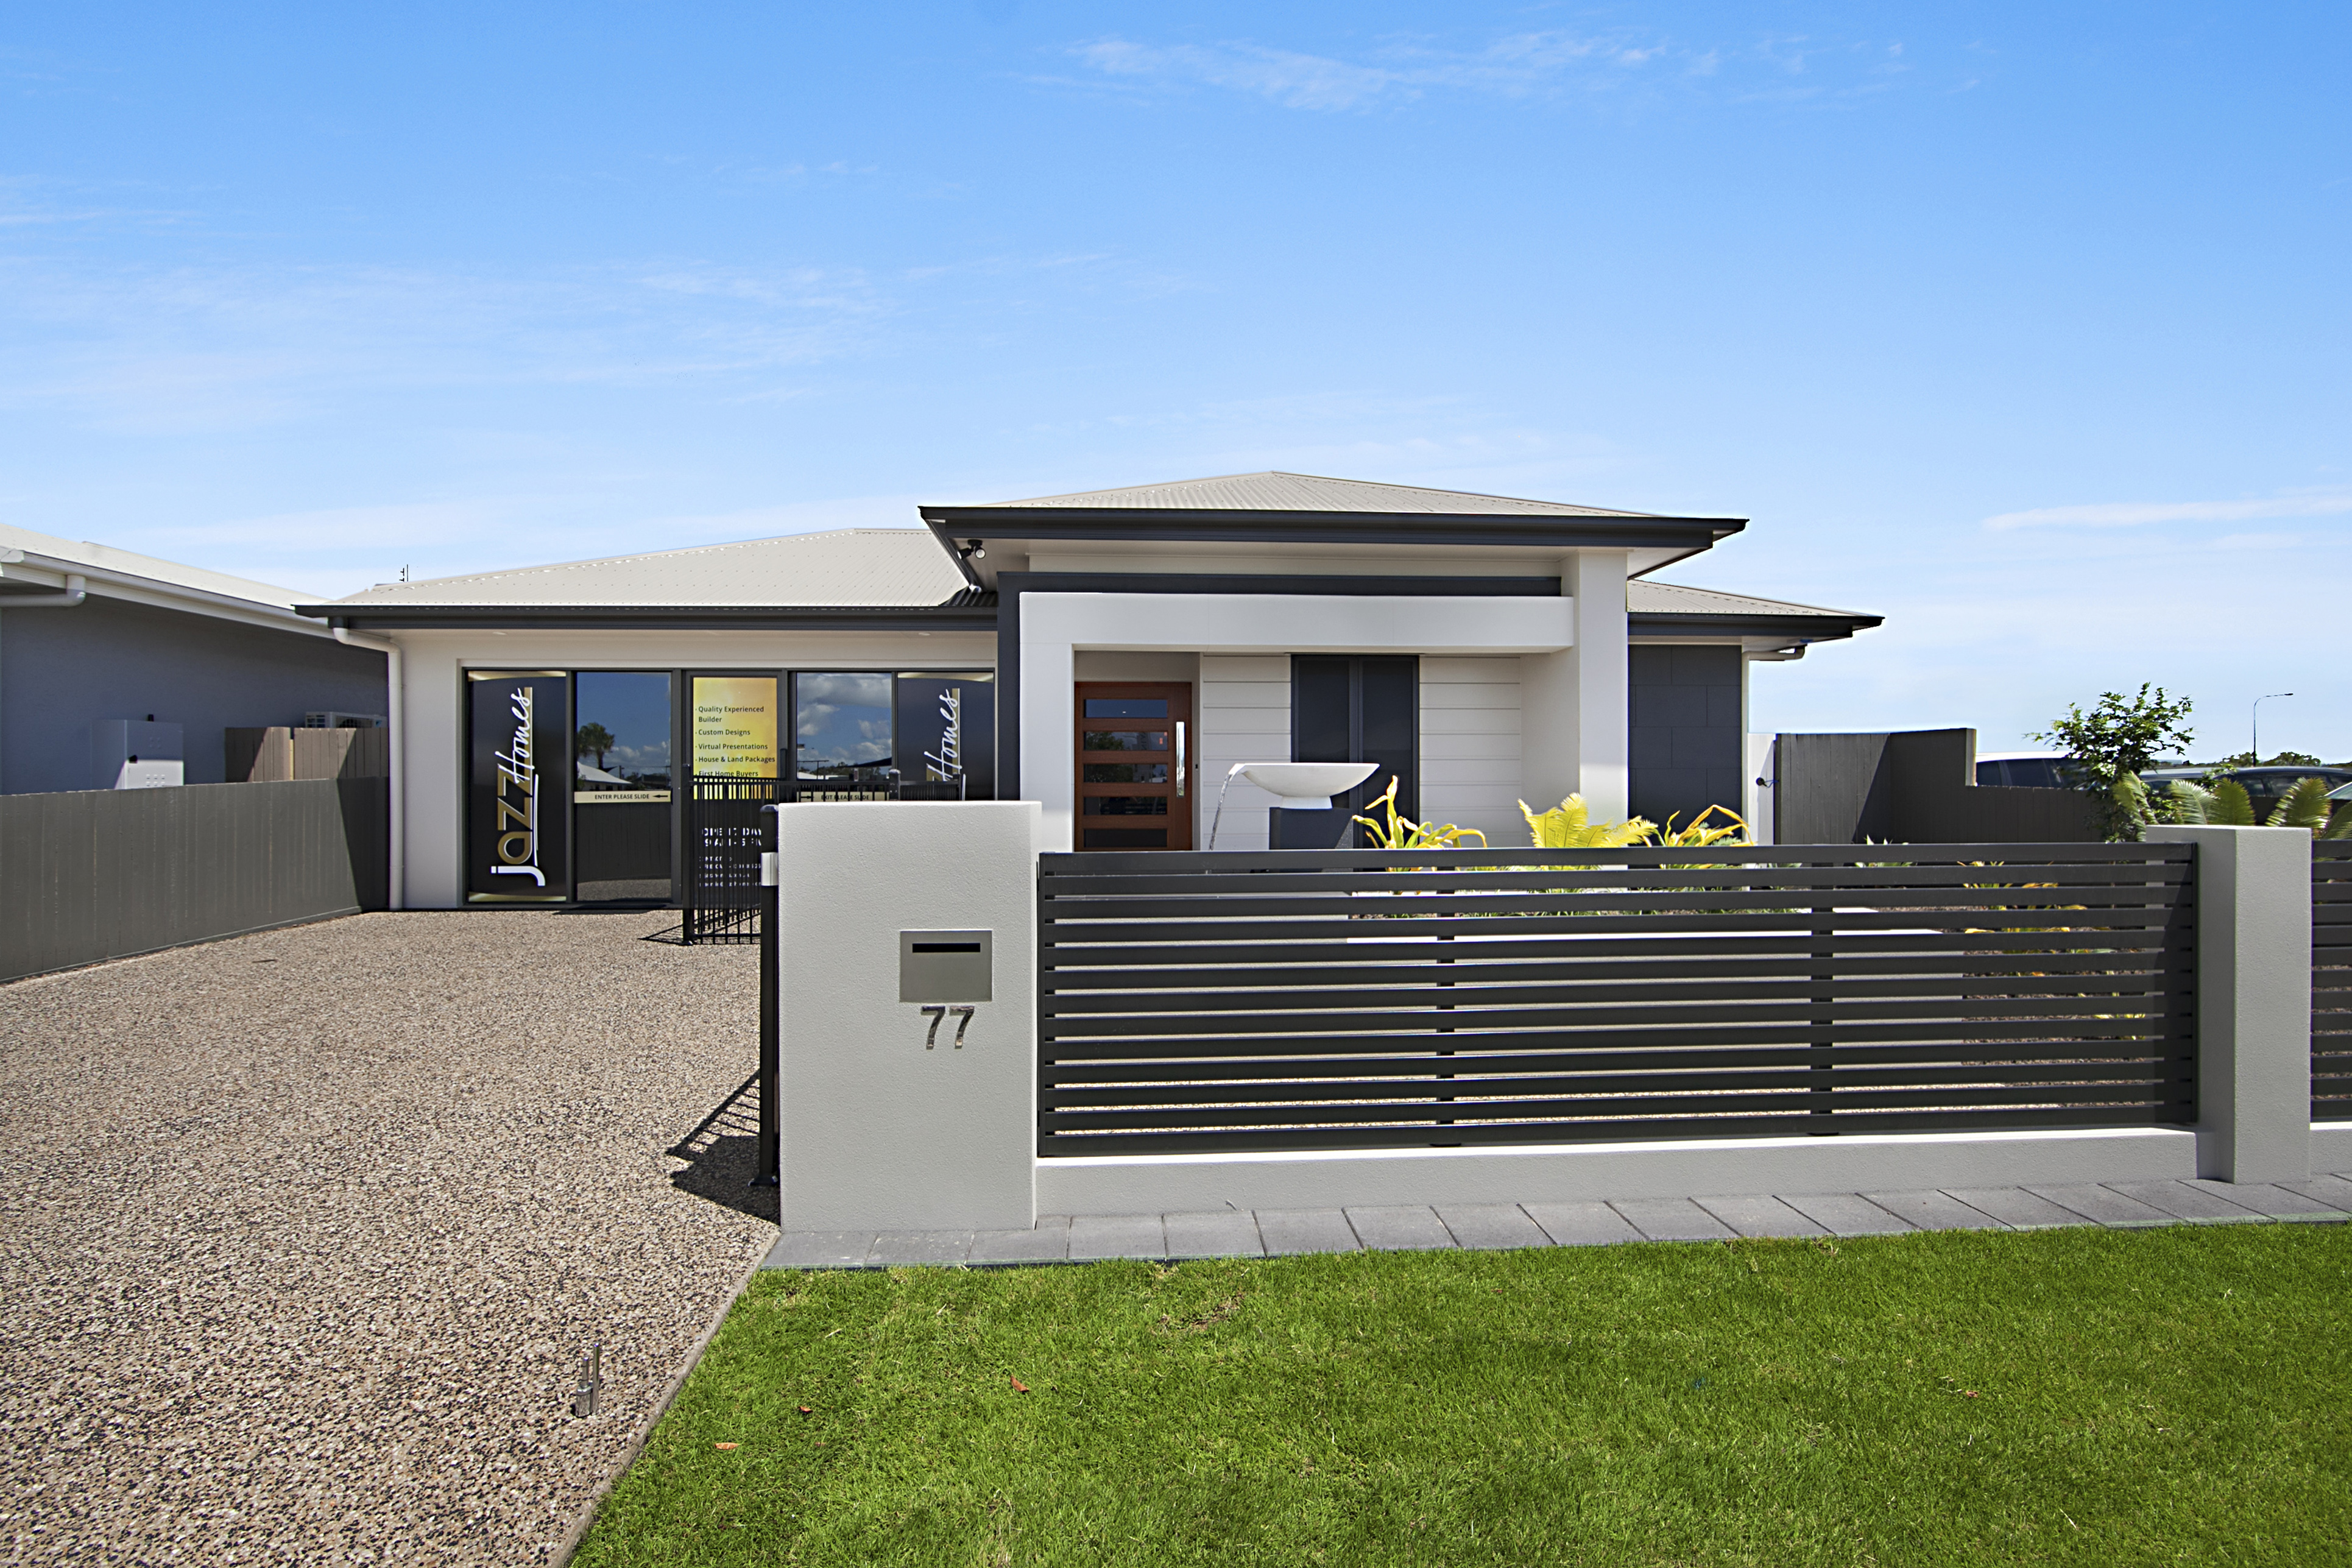 Ready Built Home Archives | Jazz Homes - Townsville Builder | House on google home design, white home design, wood house exterior design, secure home design, virtual advertising, interactive home design, medical home design, classroom home design, security home design, computer home design, 3d home design, international home design, friends home design, visual home design, design home design, online home design, global home design, group home design, digital home design, search home design,